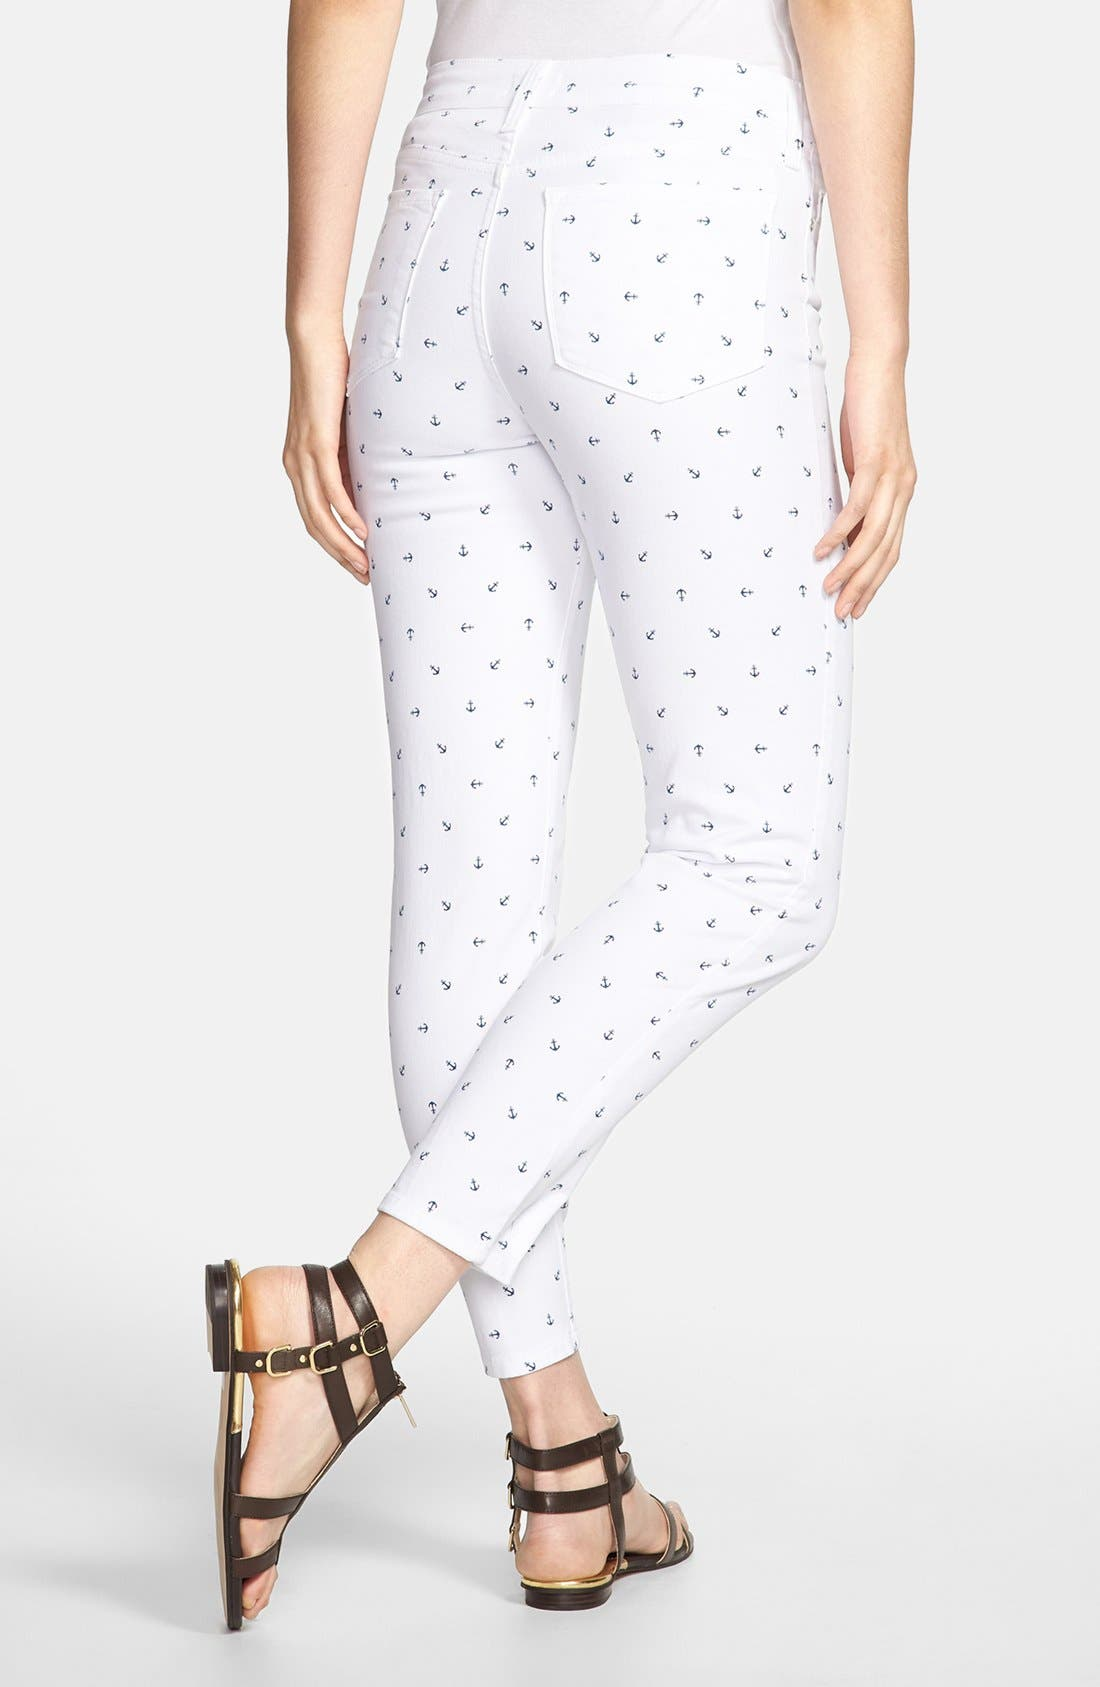 Alternate Image 2  - NYDJ 'Clarissa' Print Fitted Stretch Ankle Jeans (Optic White Anchors) (Regular & Petite)